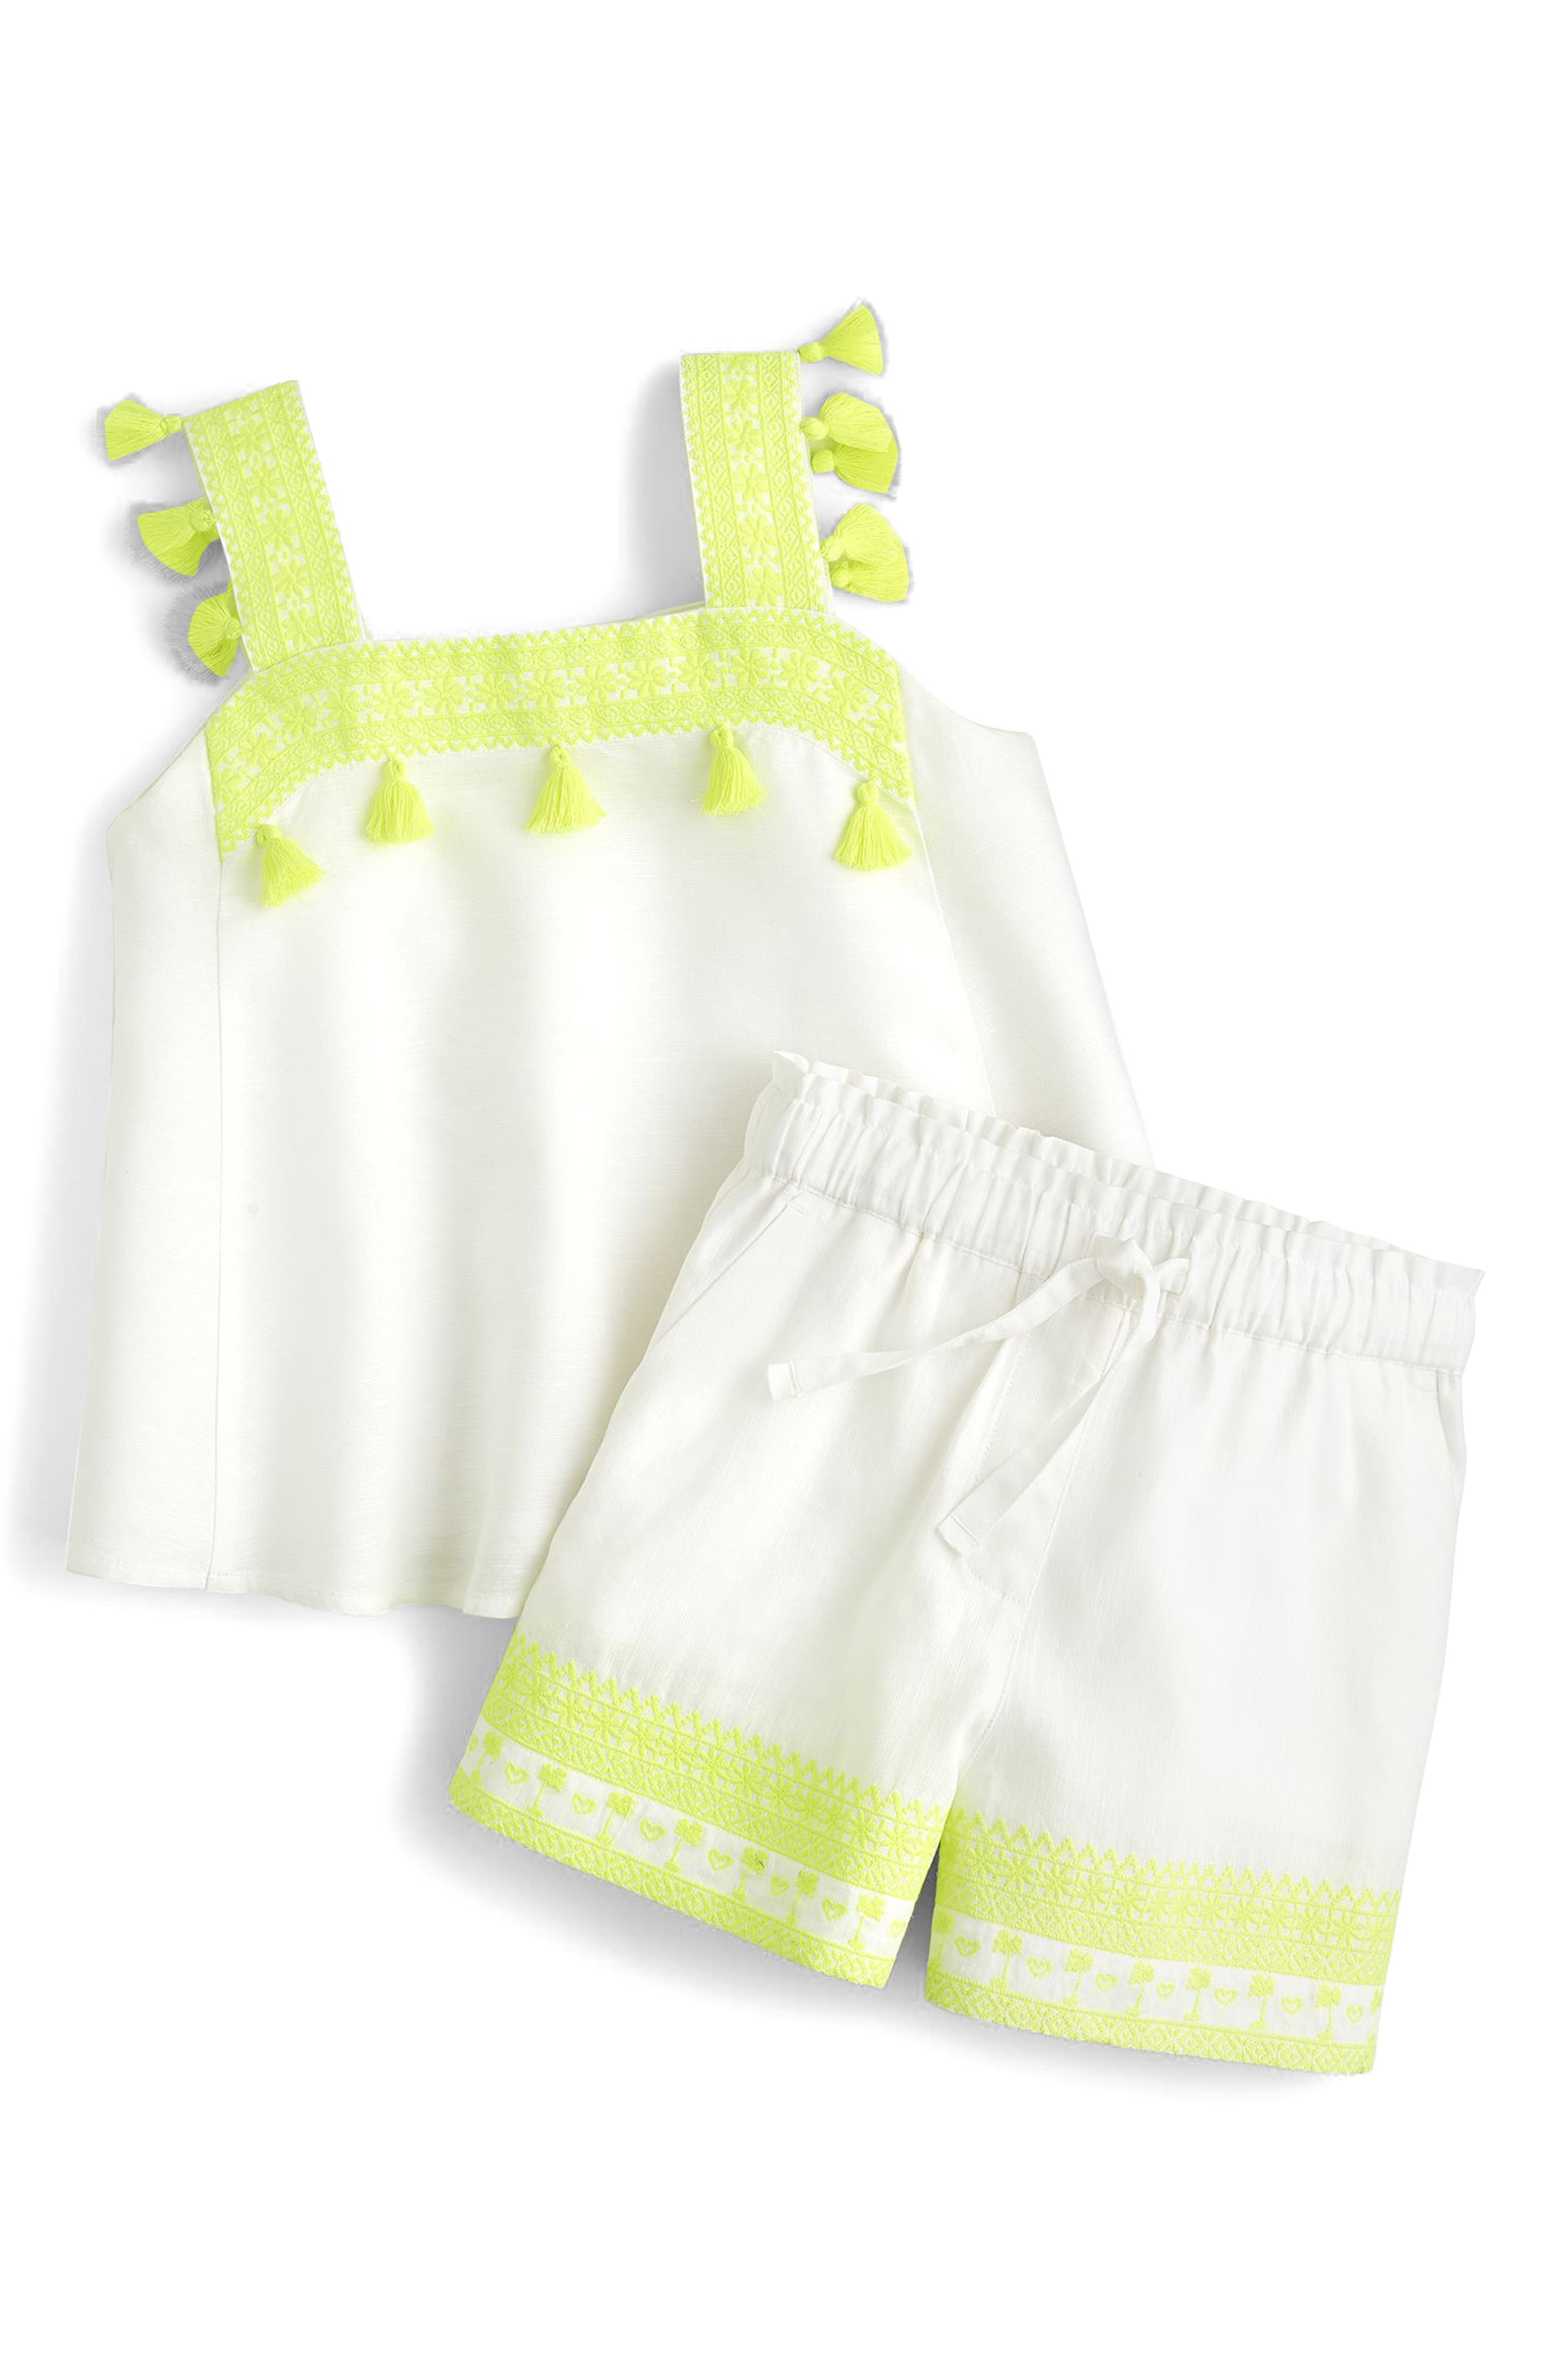 Skirty Embroidered Shorts,                             Alternate thumbnail 2, color,                             White